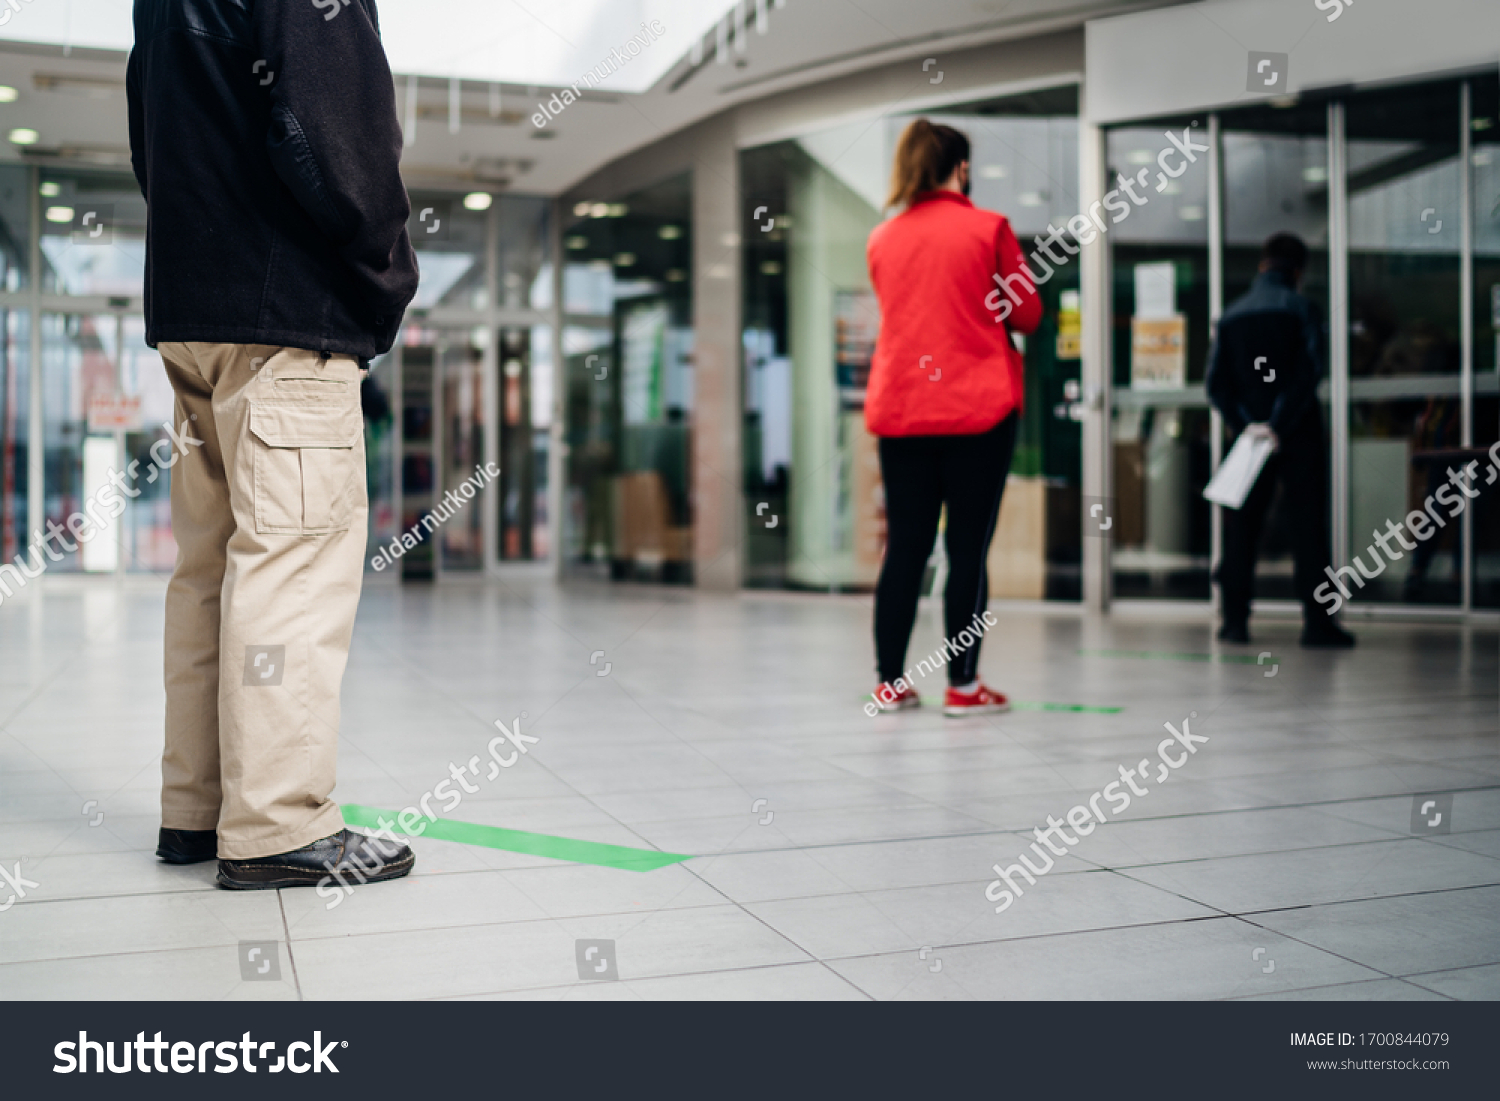 People standing in line front of bank/store due to coronavirus pandemic safety guideline.COVID-19 safe social distancing practice.Quarantine financial crisis,banking,loans.Spaced out queue.Crowd-limit #1700844079